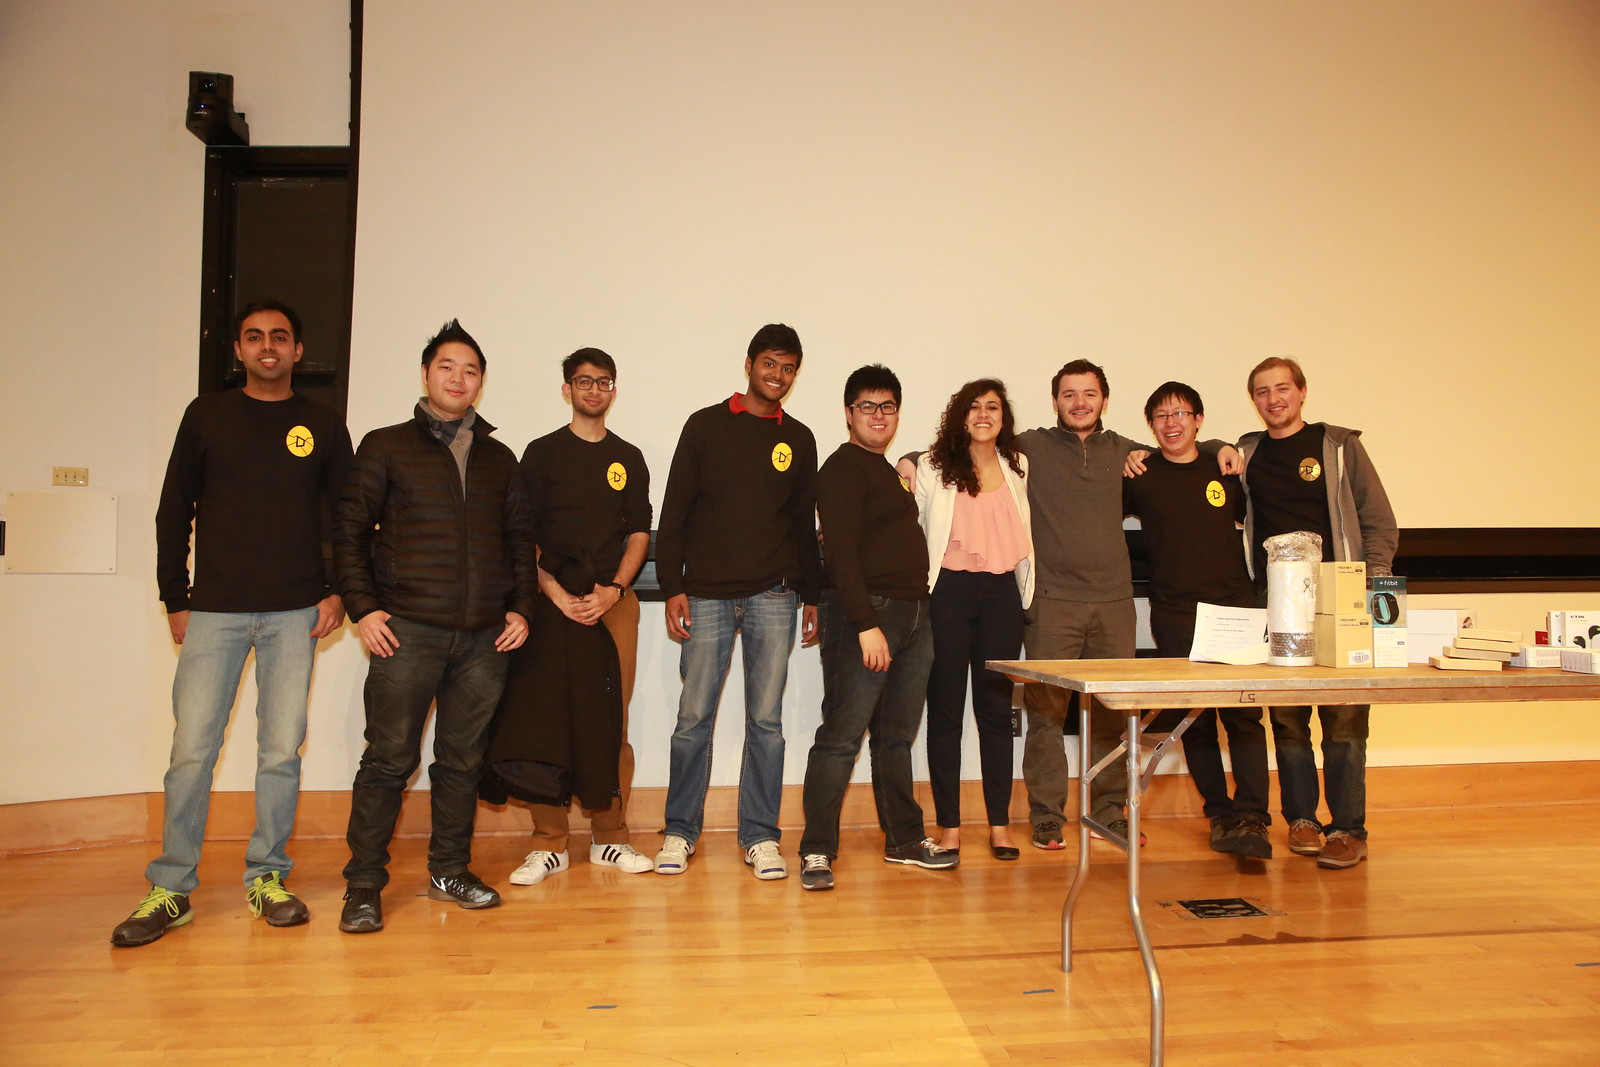 Dragon Hacks 2016 volunteers and organizers